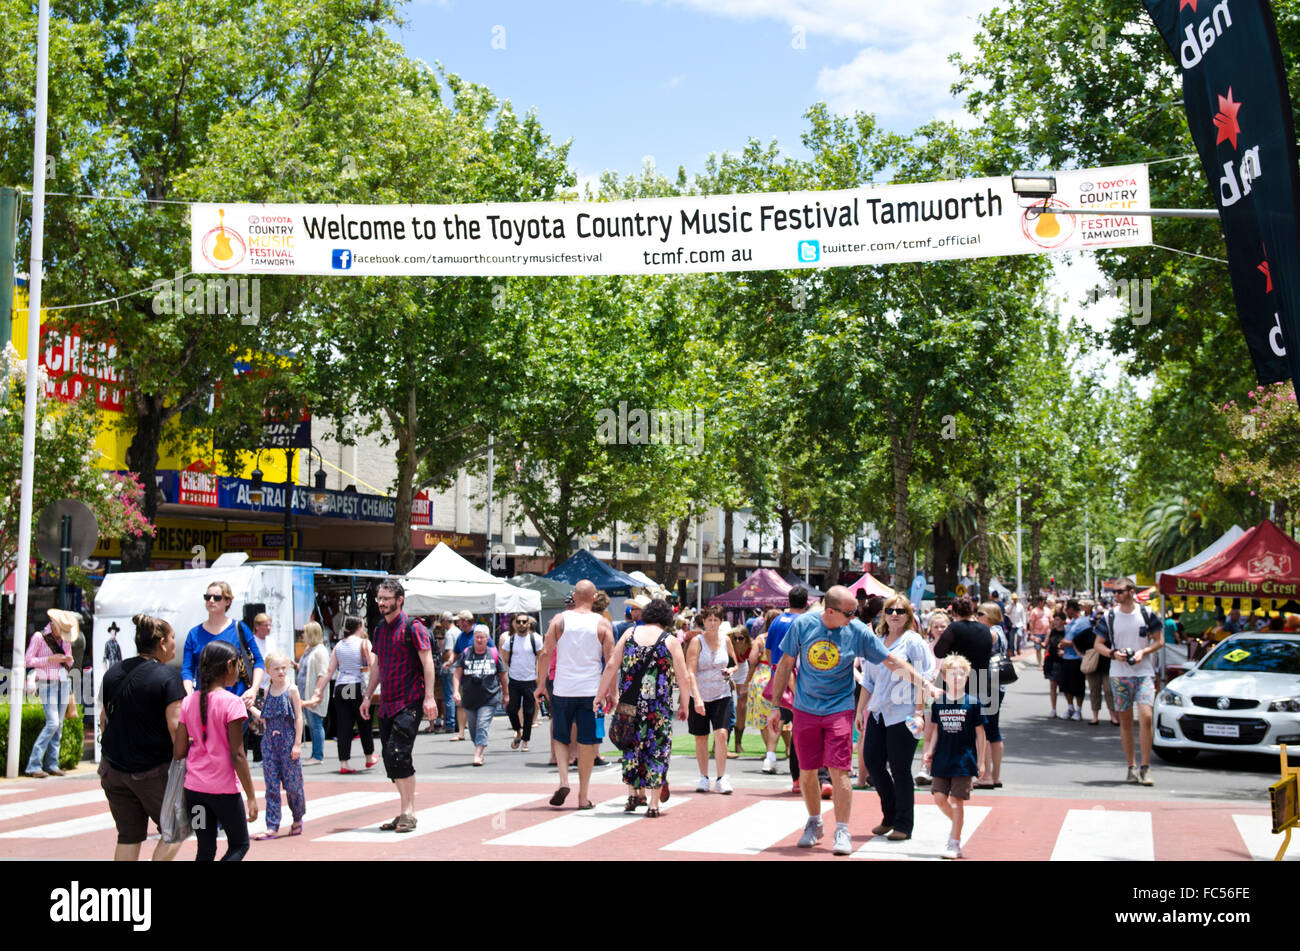 welcome-to-country-music-festival-banner-over-peel-street-tamworth-FC56FE.jpg